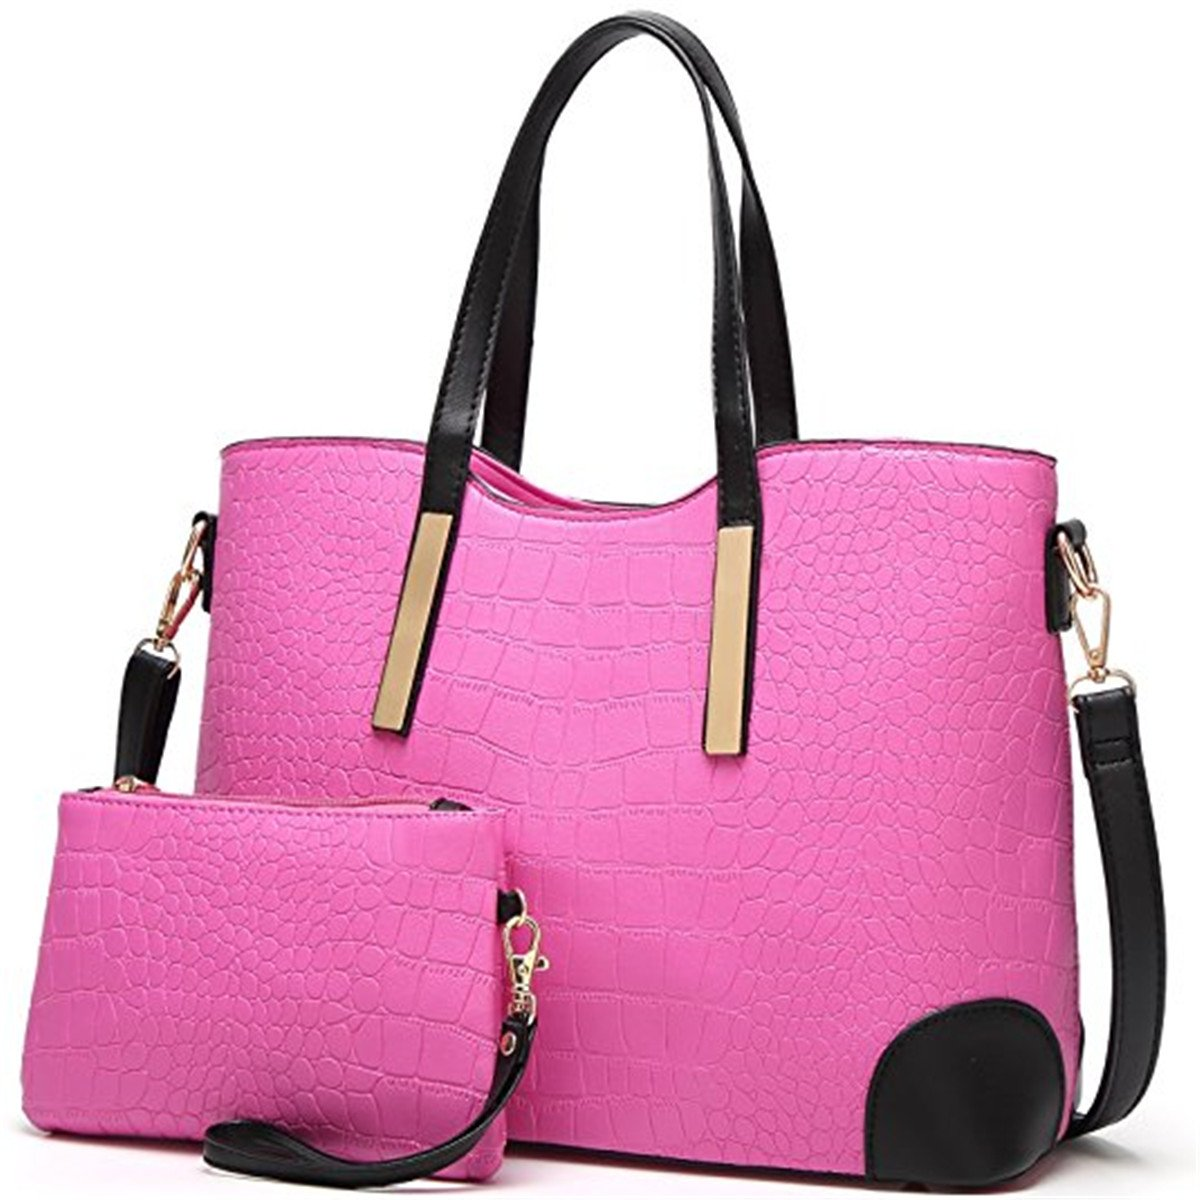 Women Handbag Tote Purse Leather Messenger Hobo Bag